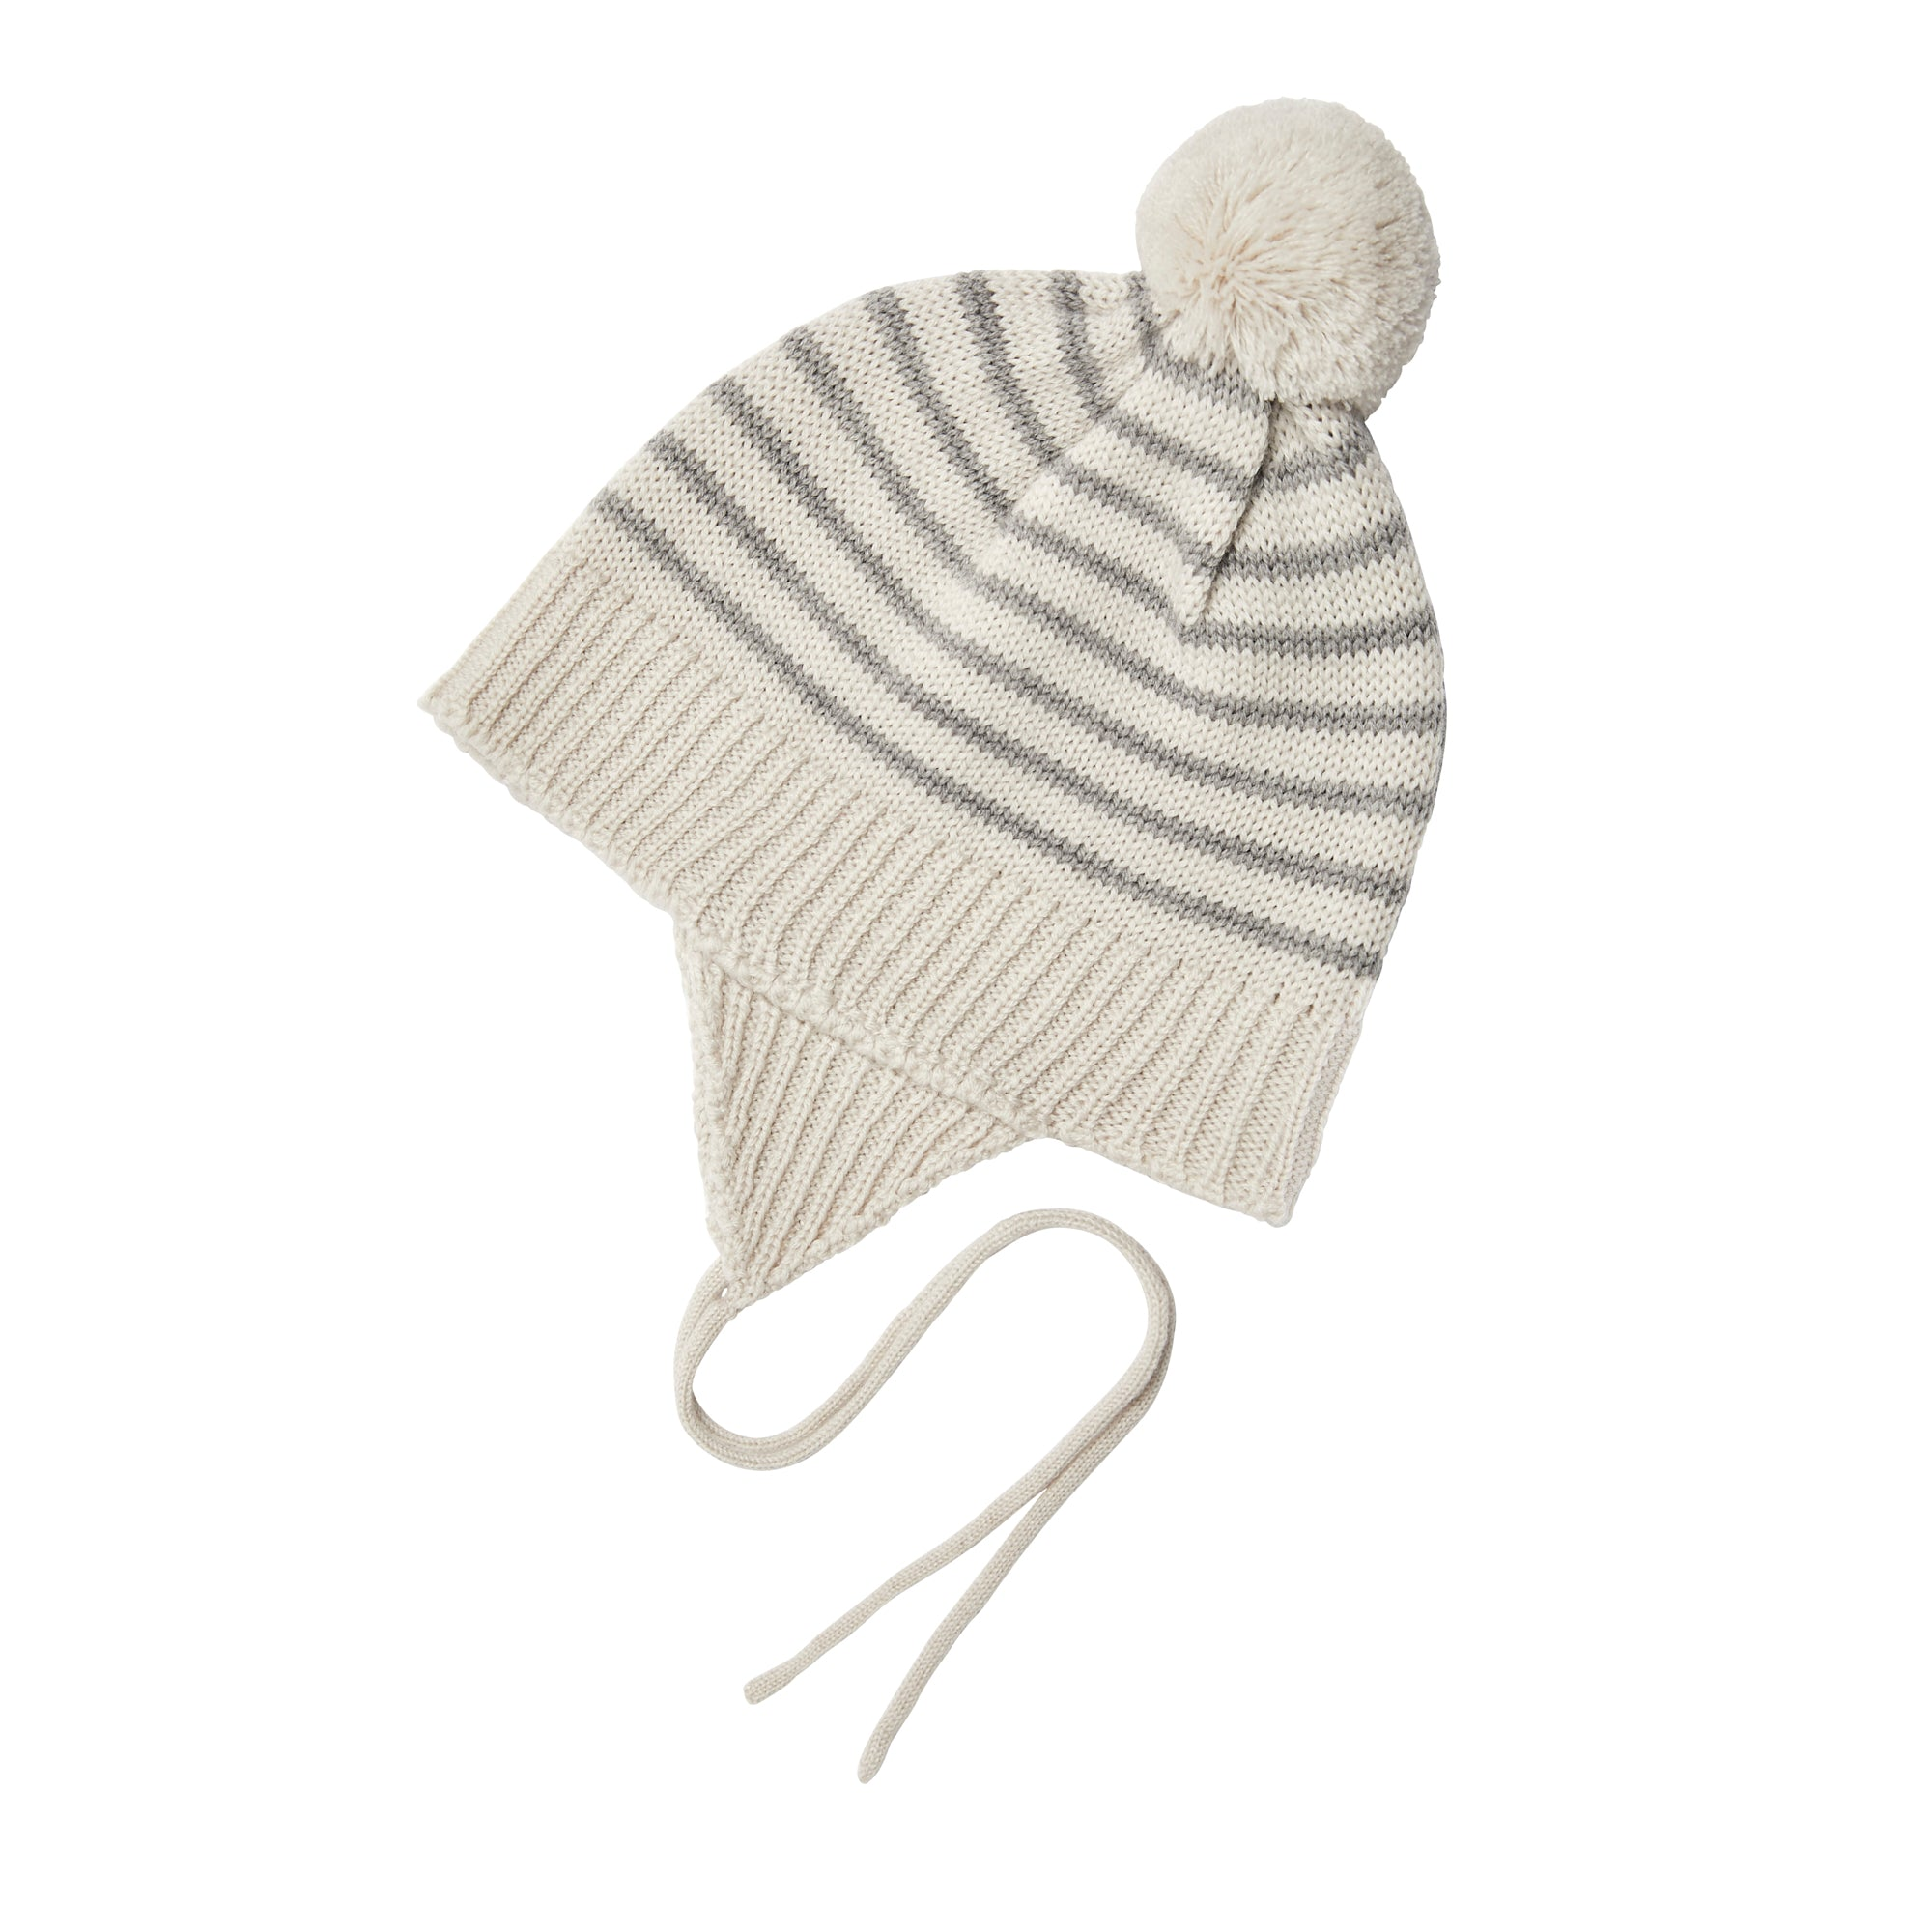 FUB Baby Pompom Ecru/Light Grey